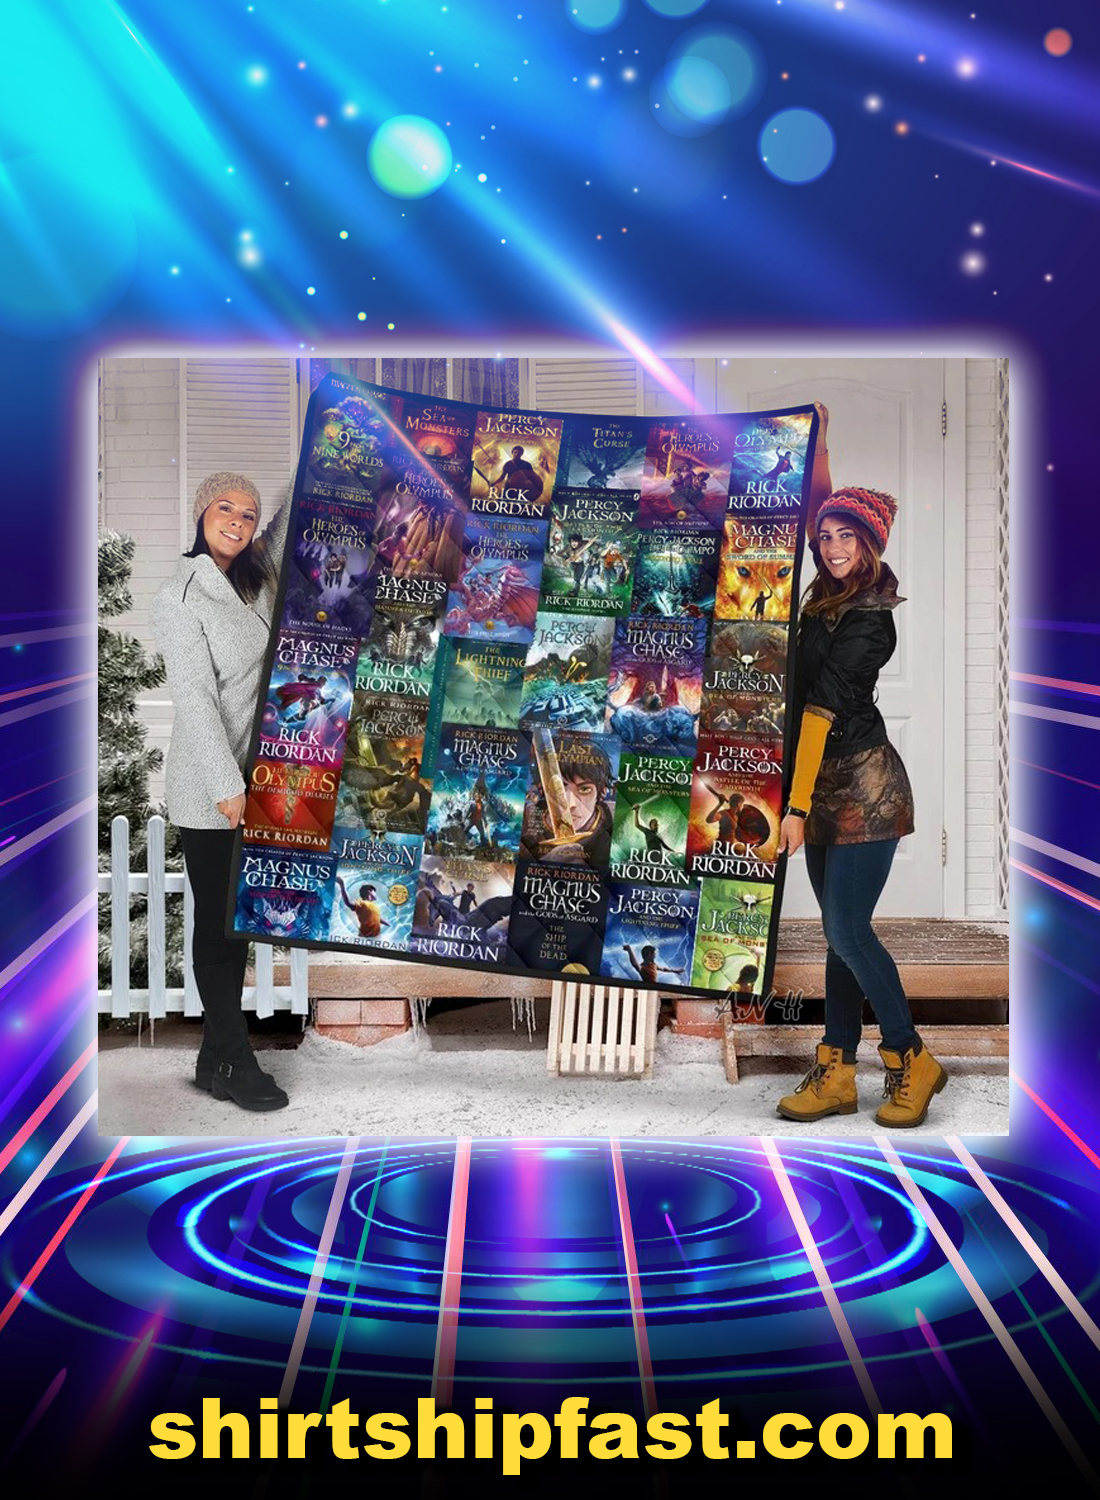 Percy jackson and magnus chase book covers quilt blanket - Picture 1